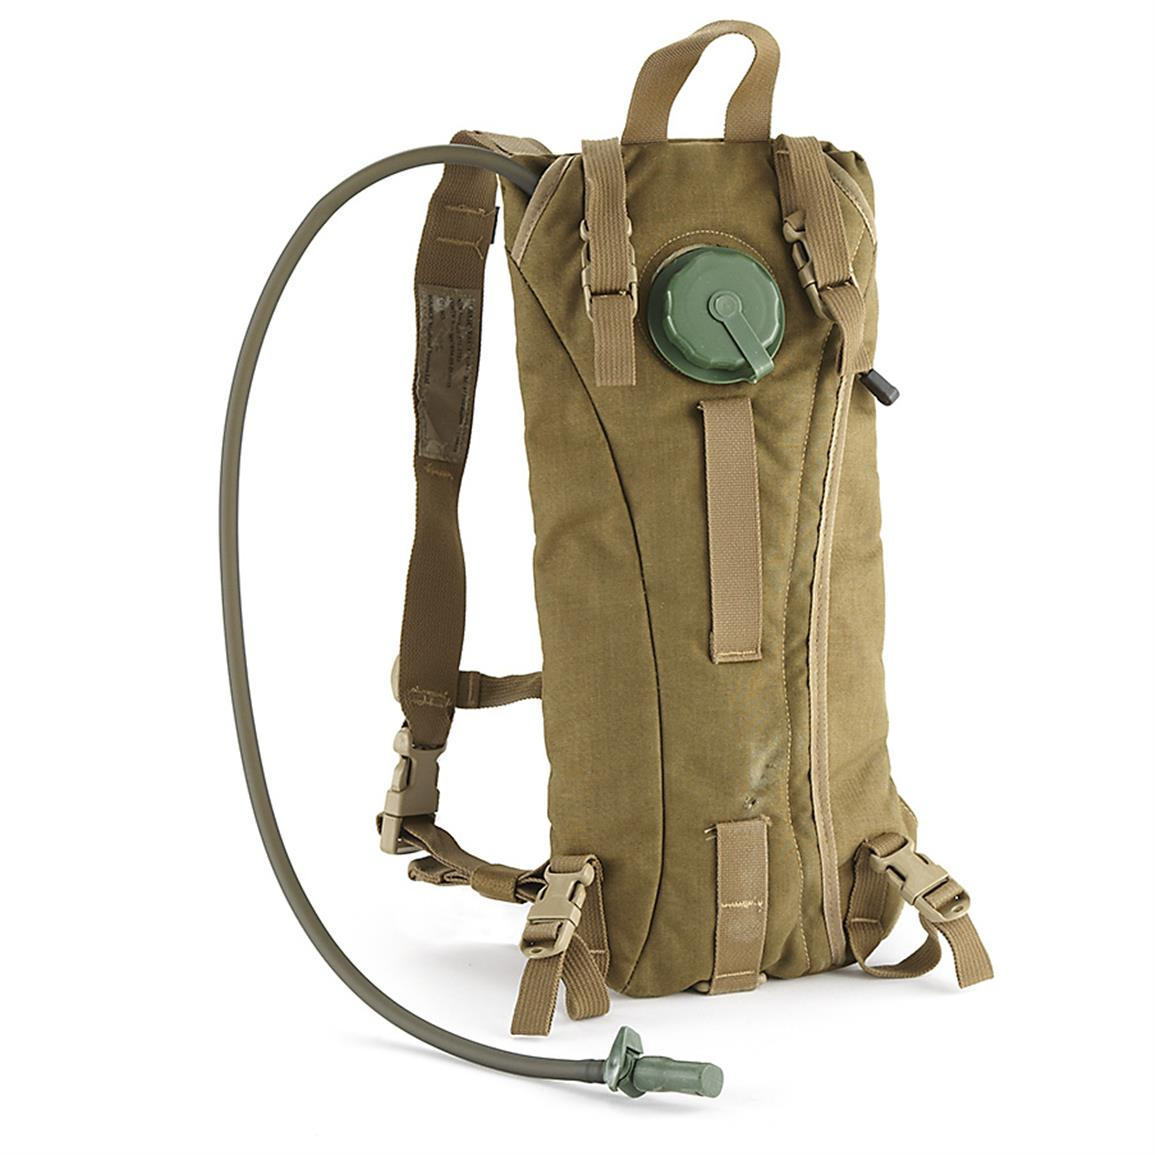 Used Military Surplus Hydration Pack, Coyote Tan